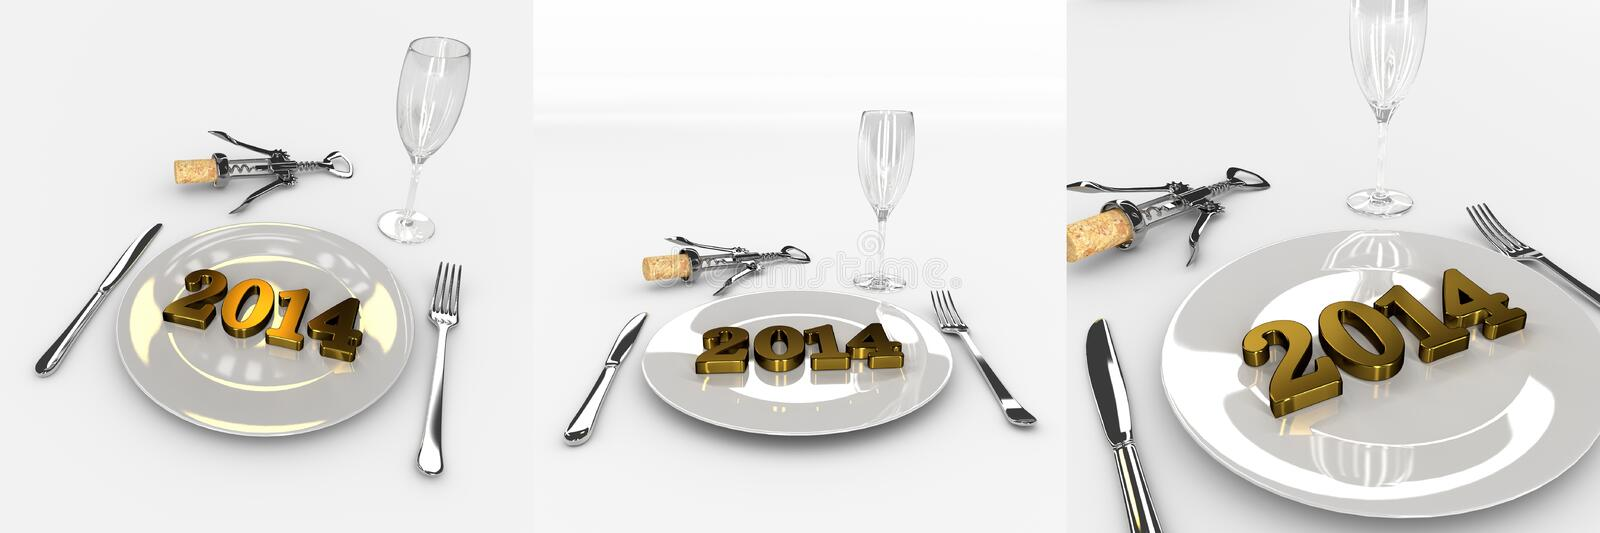 Set Of Abstract New Year 2014 On The Plate - Good Taste stock photo